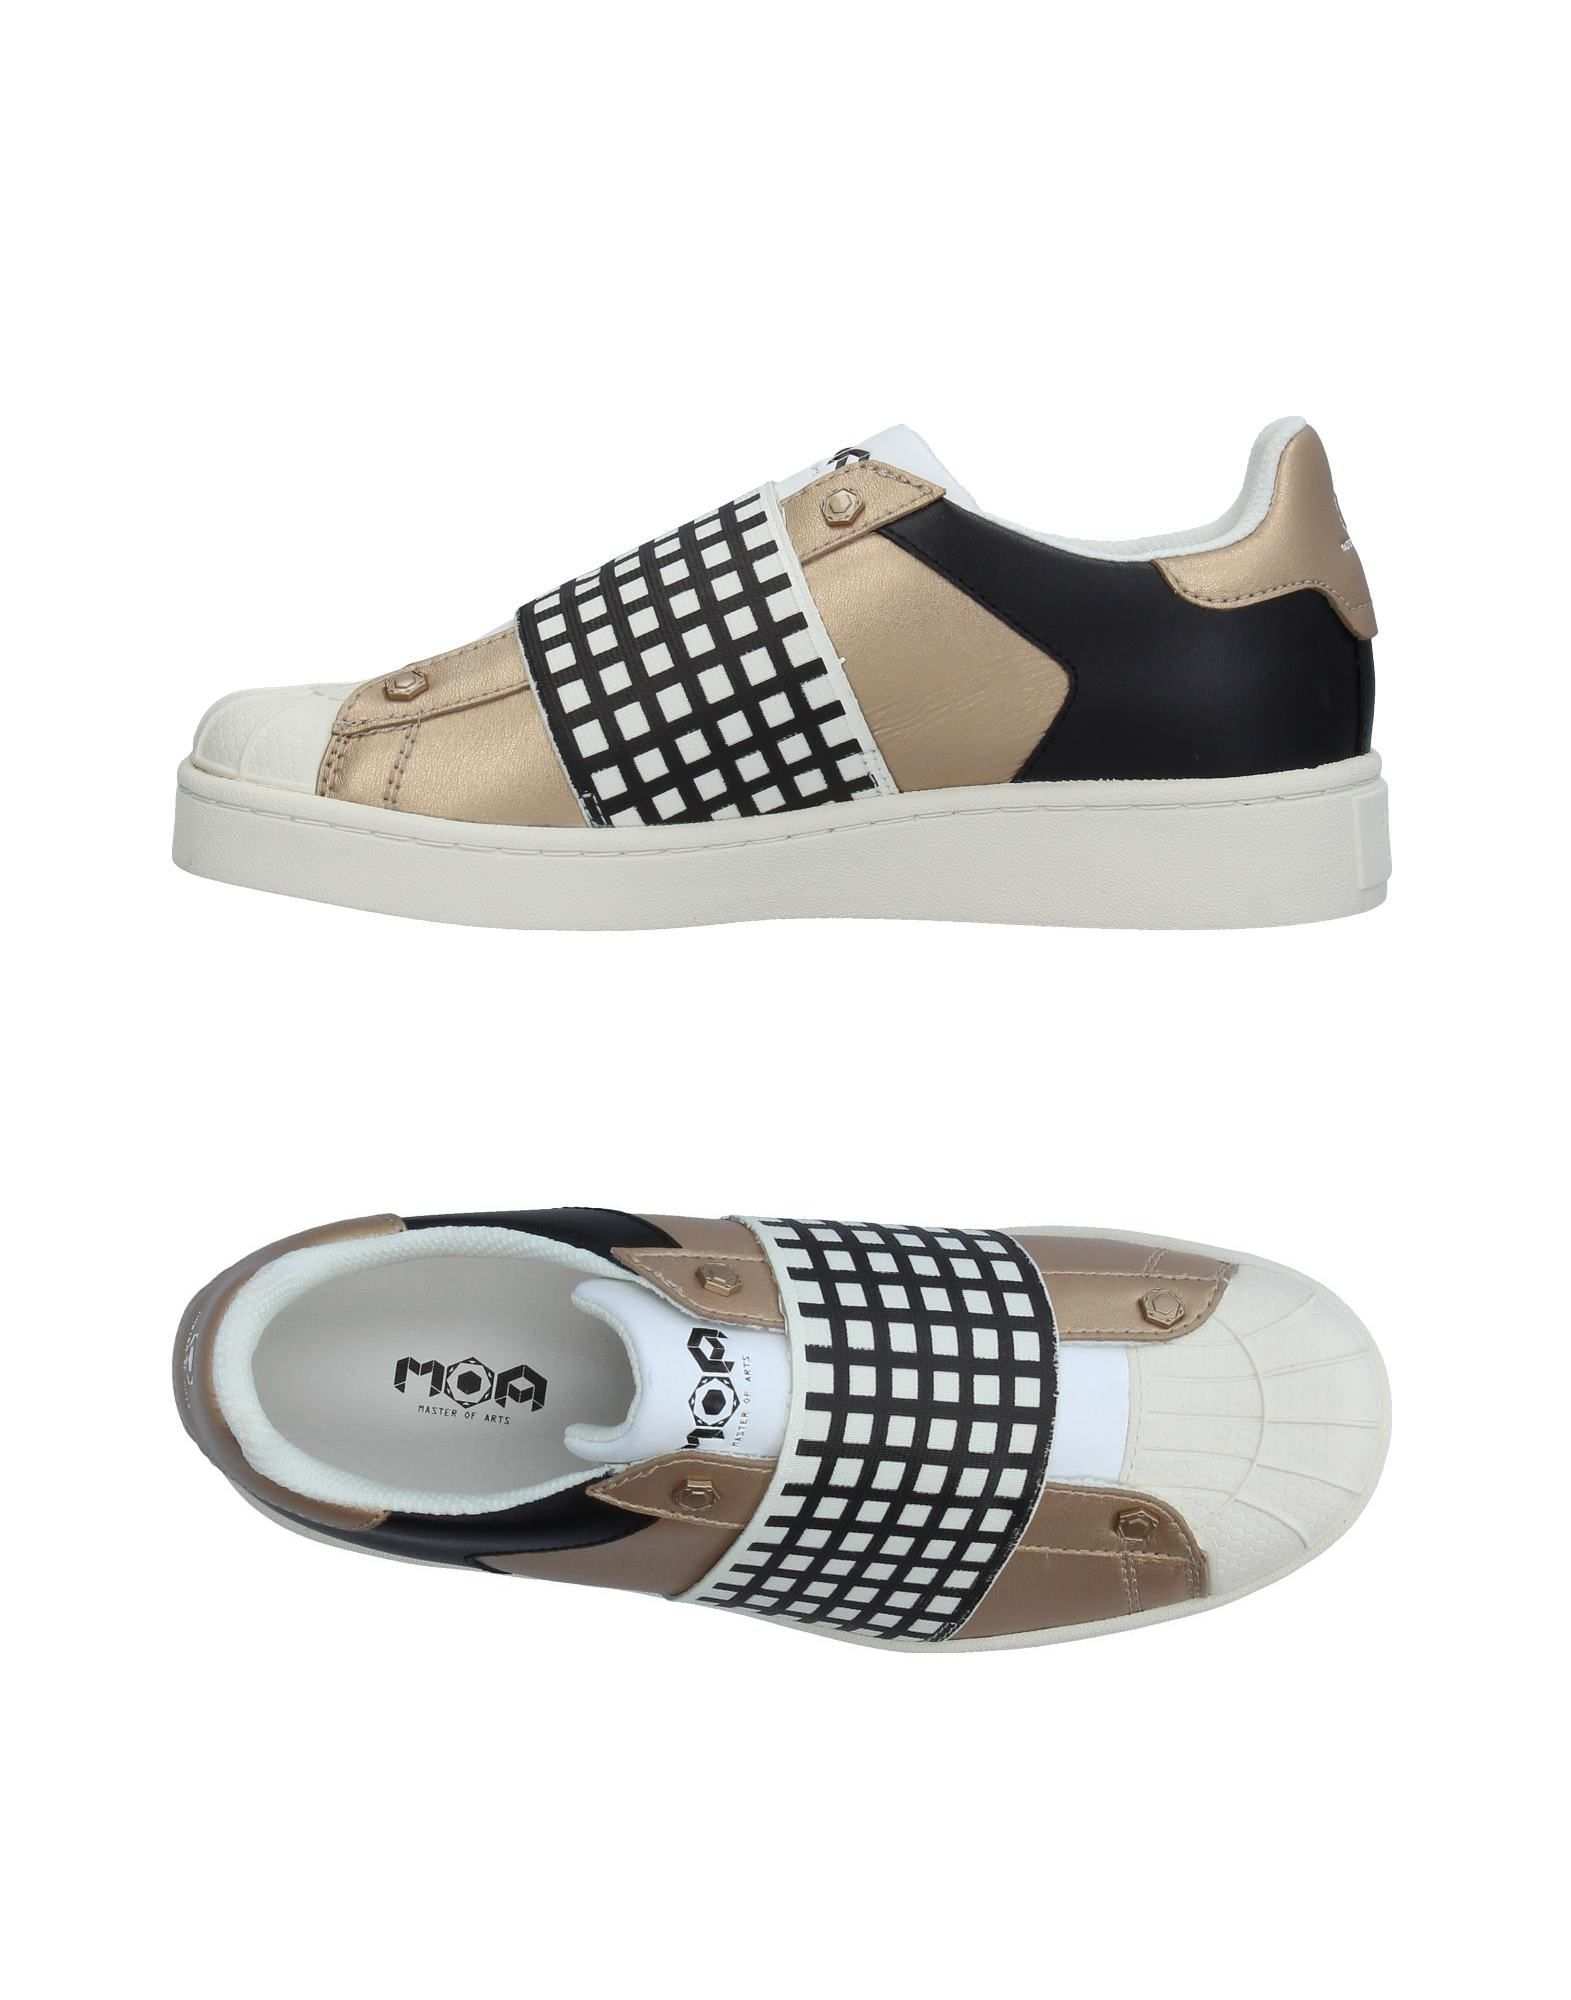 Baskets Moa Master Of Arts Femme - Baskets Moa Master Of Arts Platine Chaussures casual sauvages